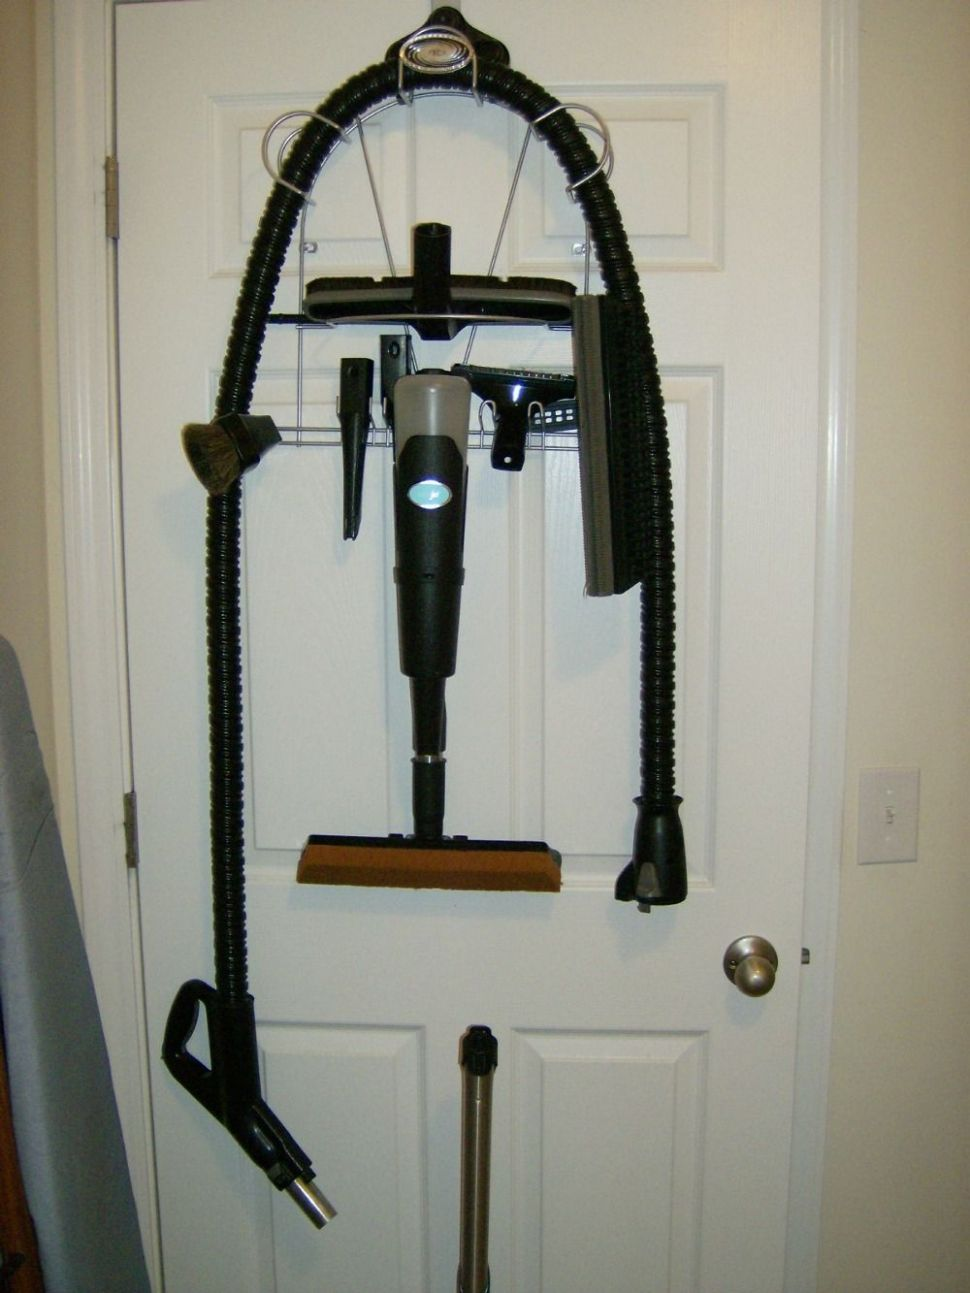 how to store vacuum cleaner attachments - Google Search (With ..